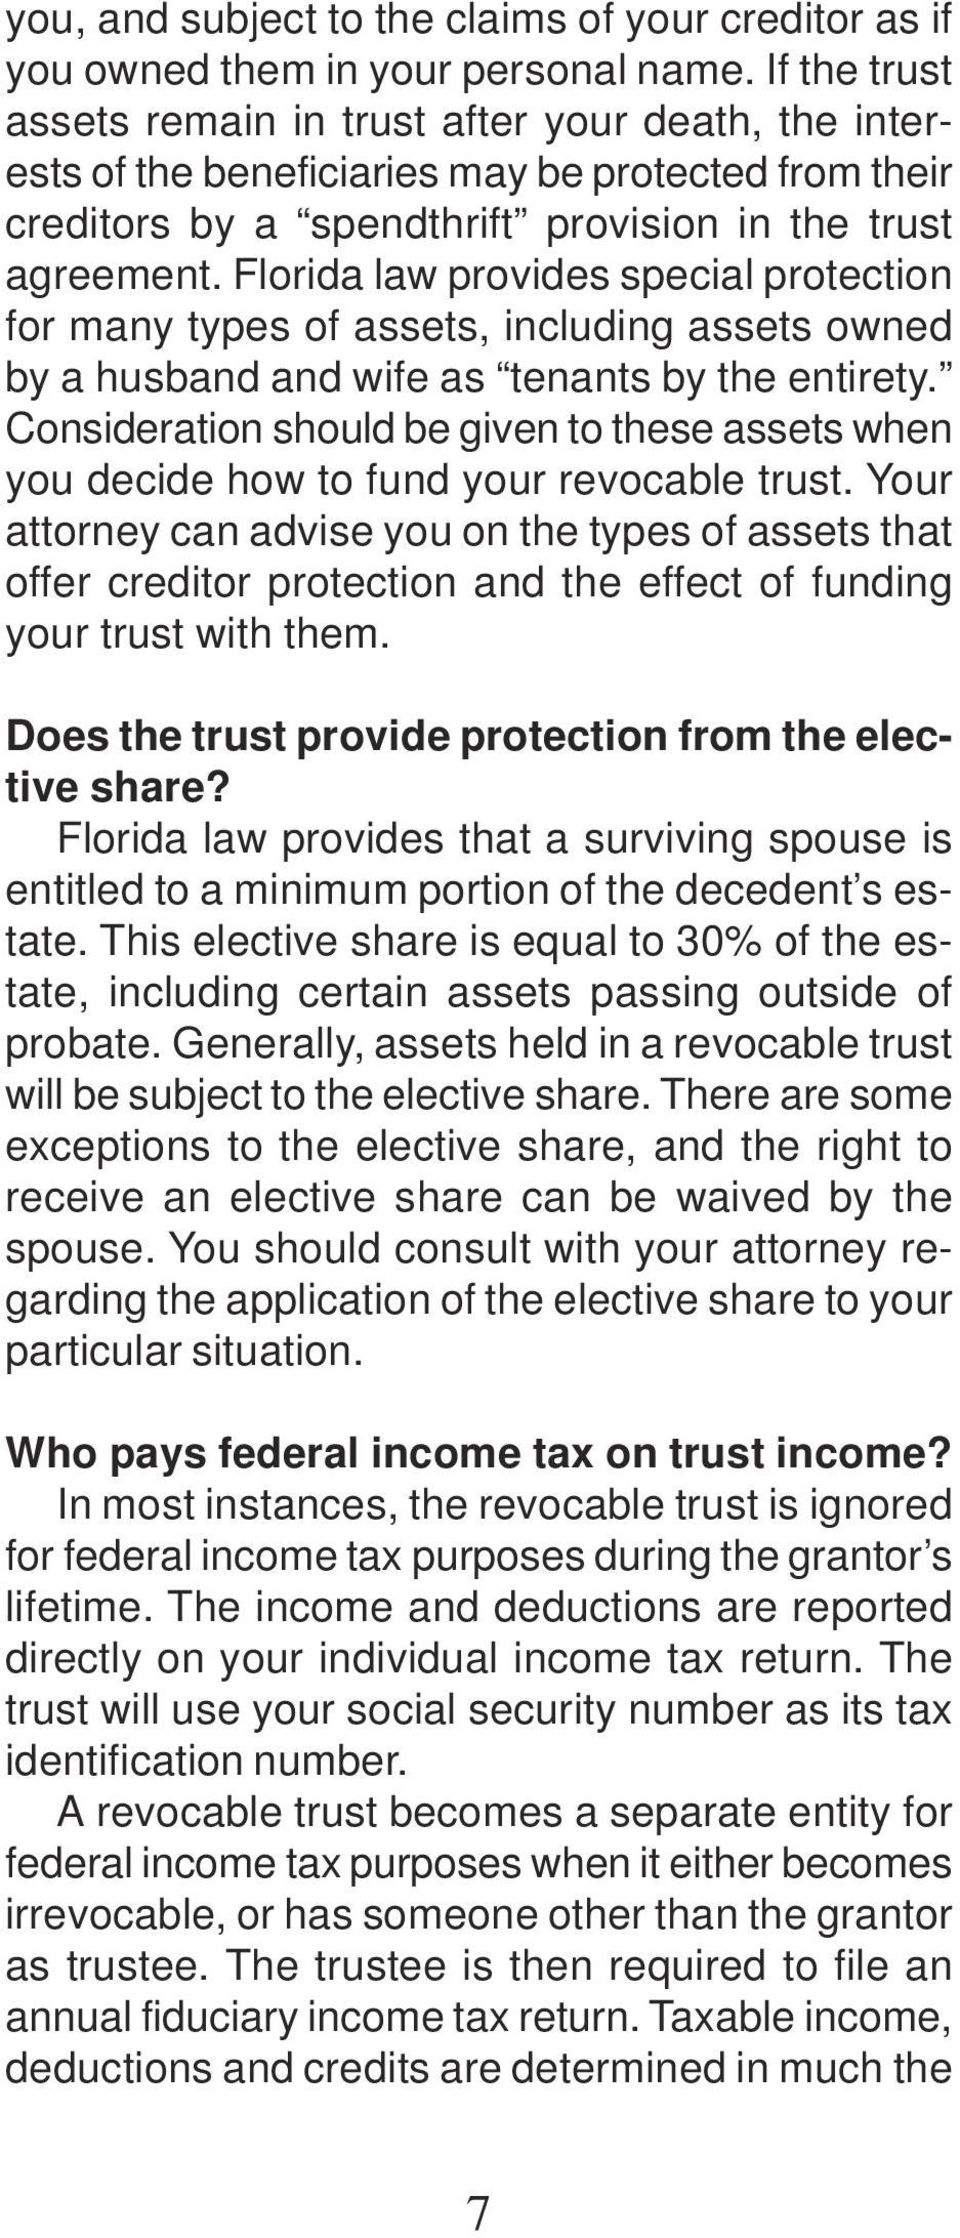 Florida law provides special protection for many types of assets, including assets owned by a husband and wife as tenants by the entirety.